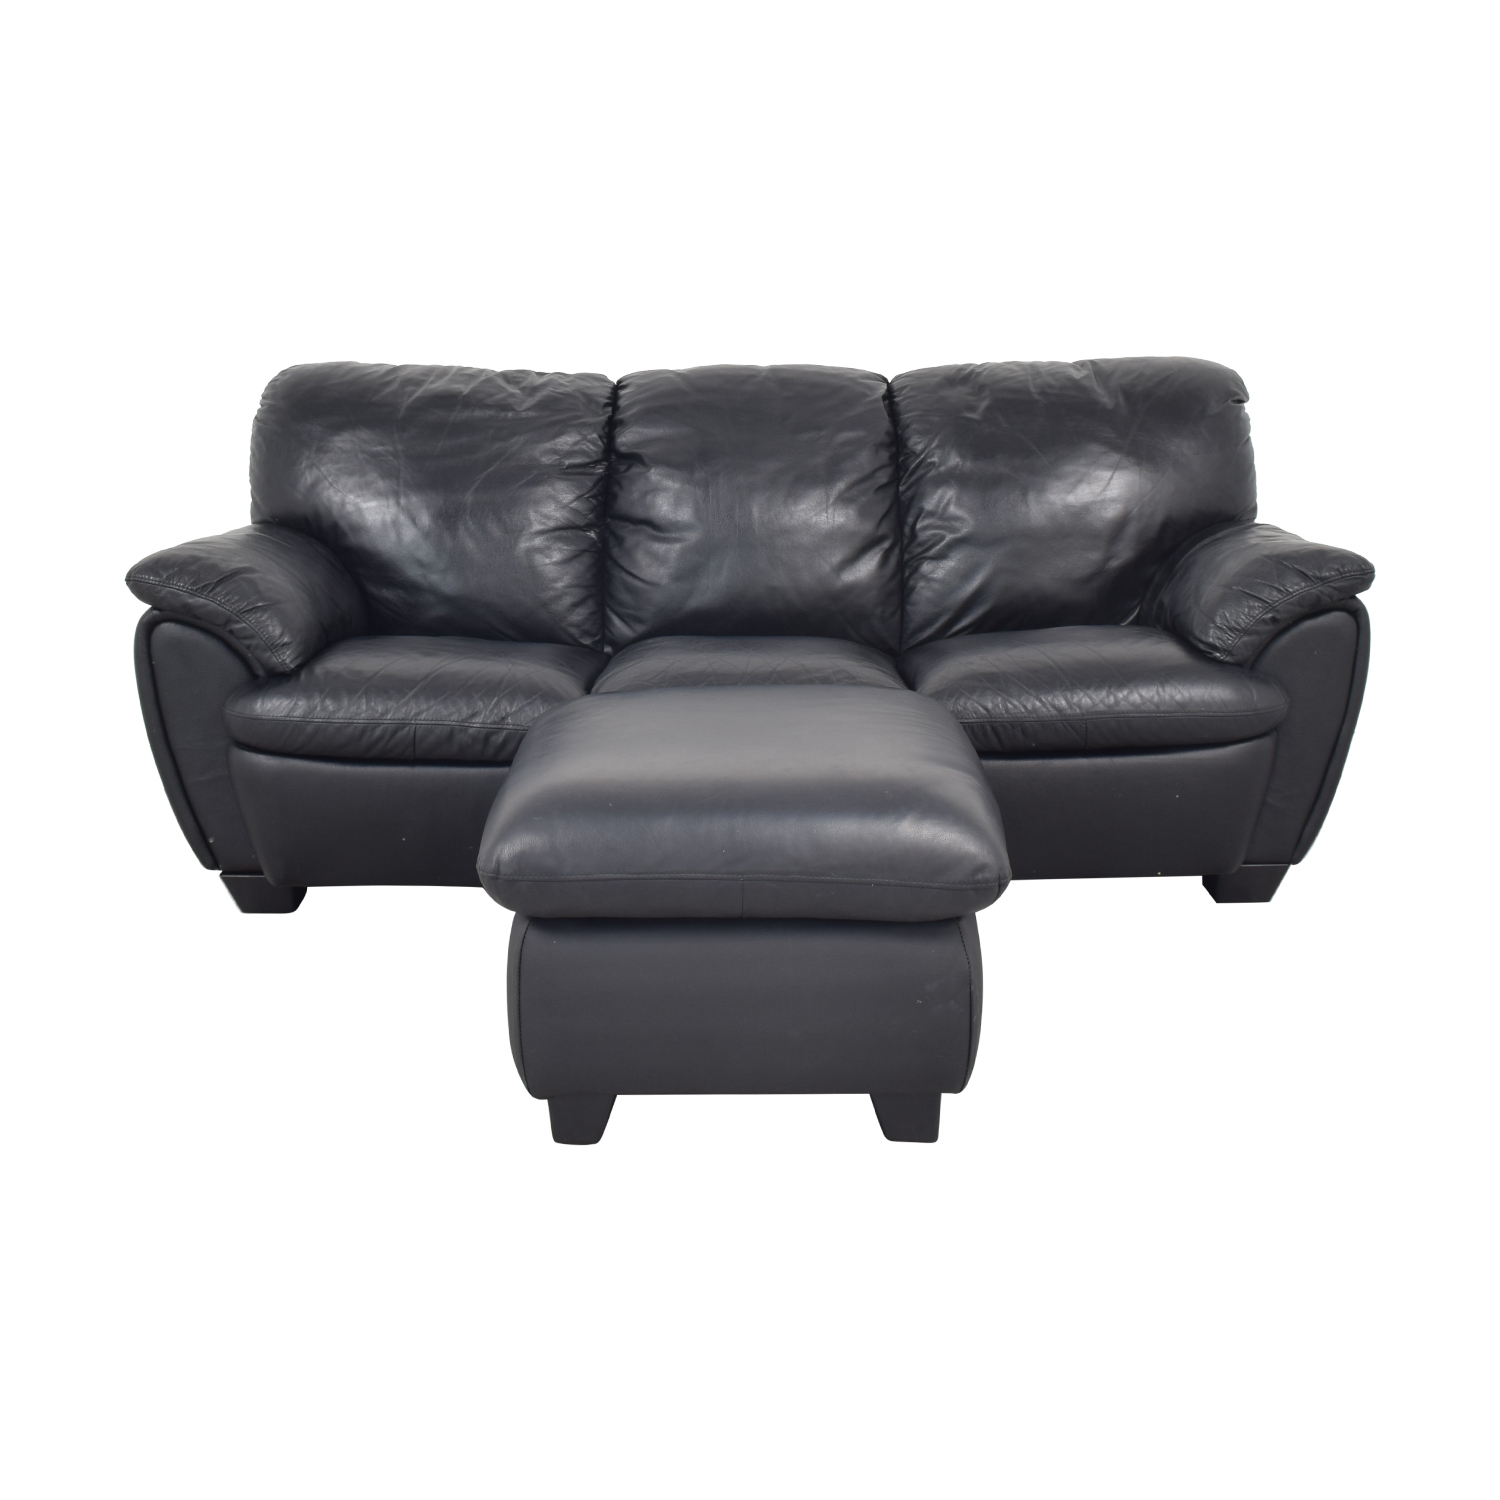 72 off broyhill furniture broyhill leather sofa and ottoman sofas